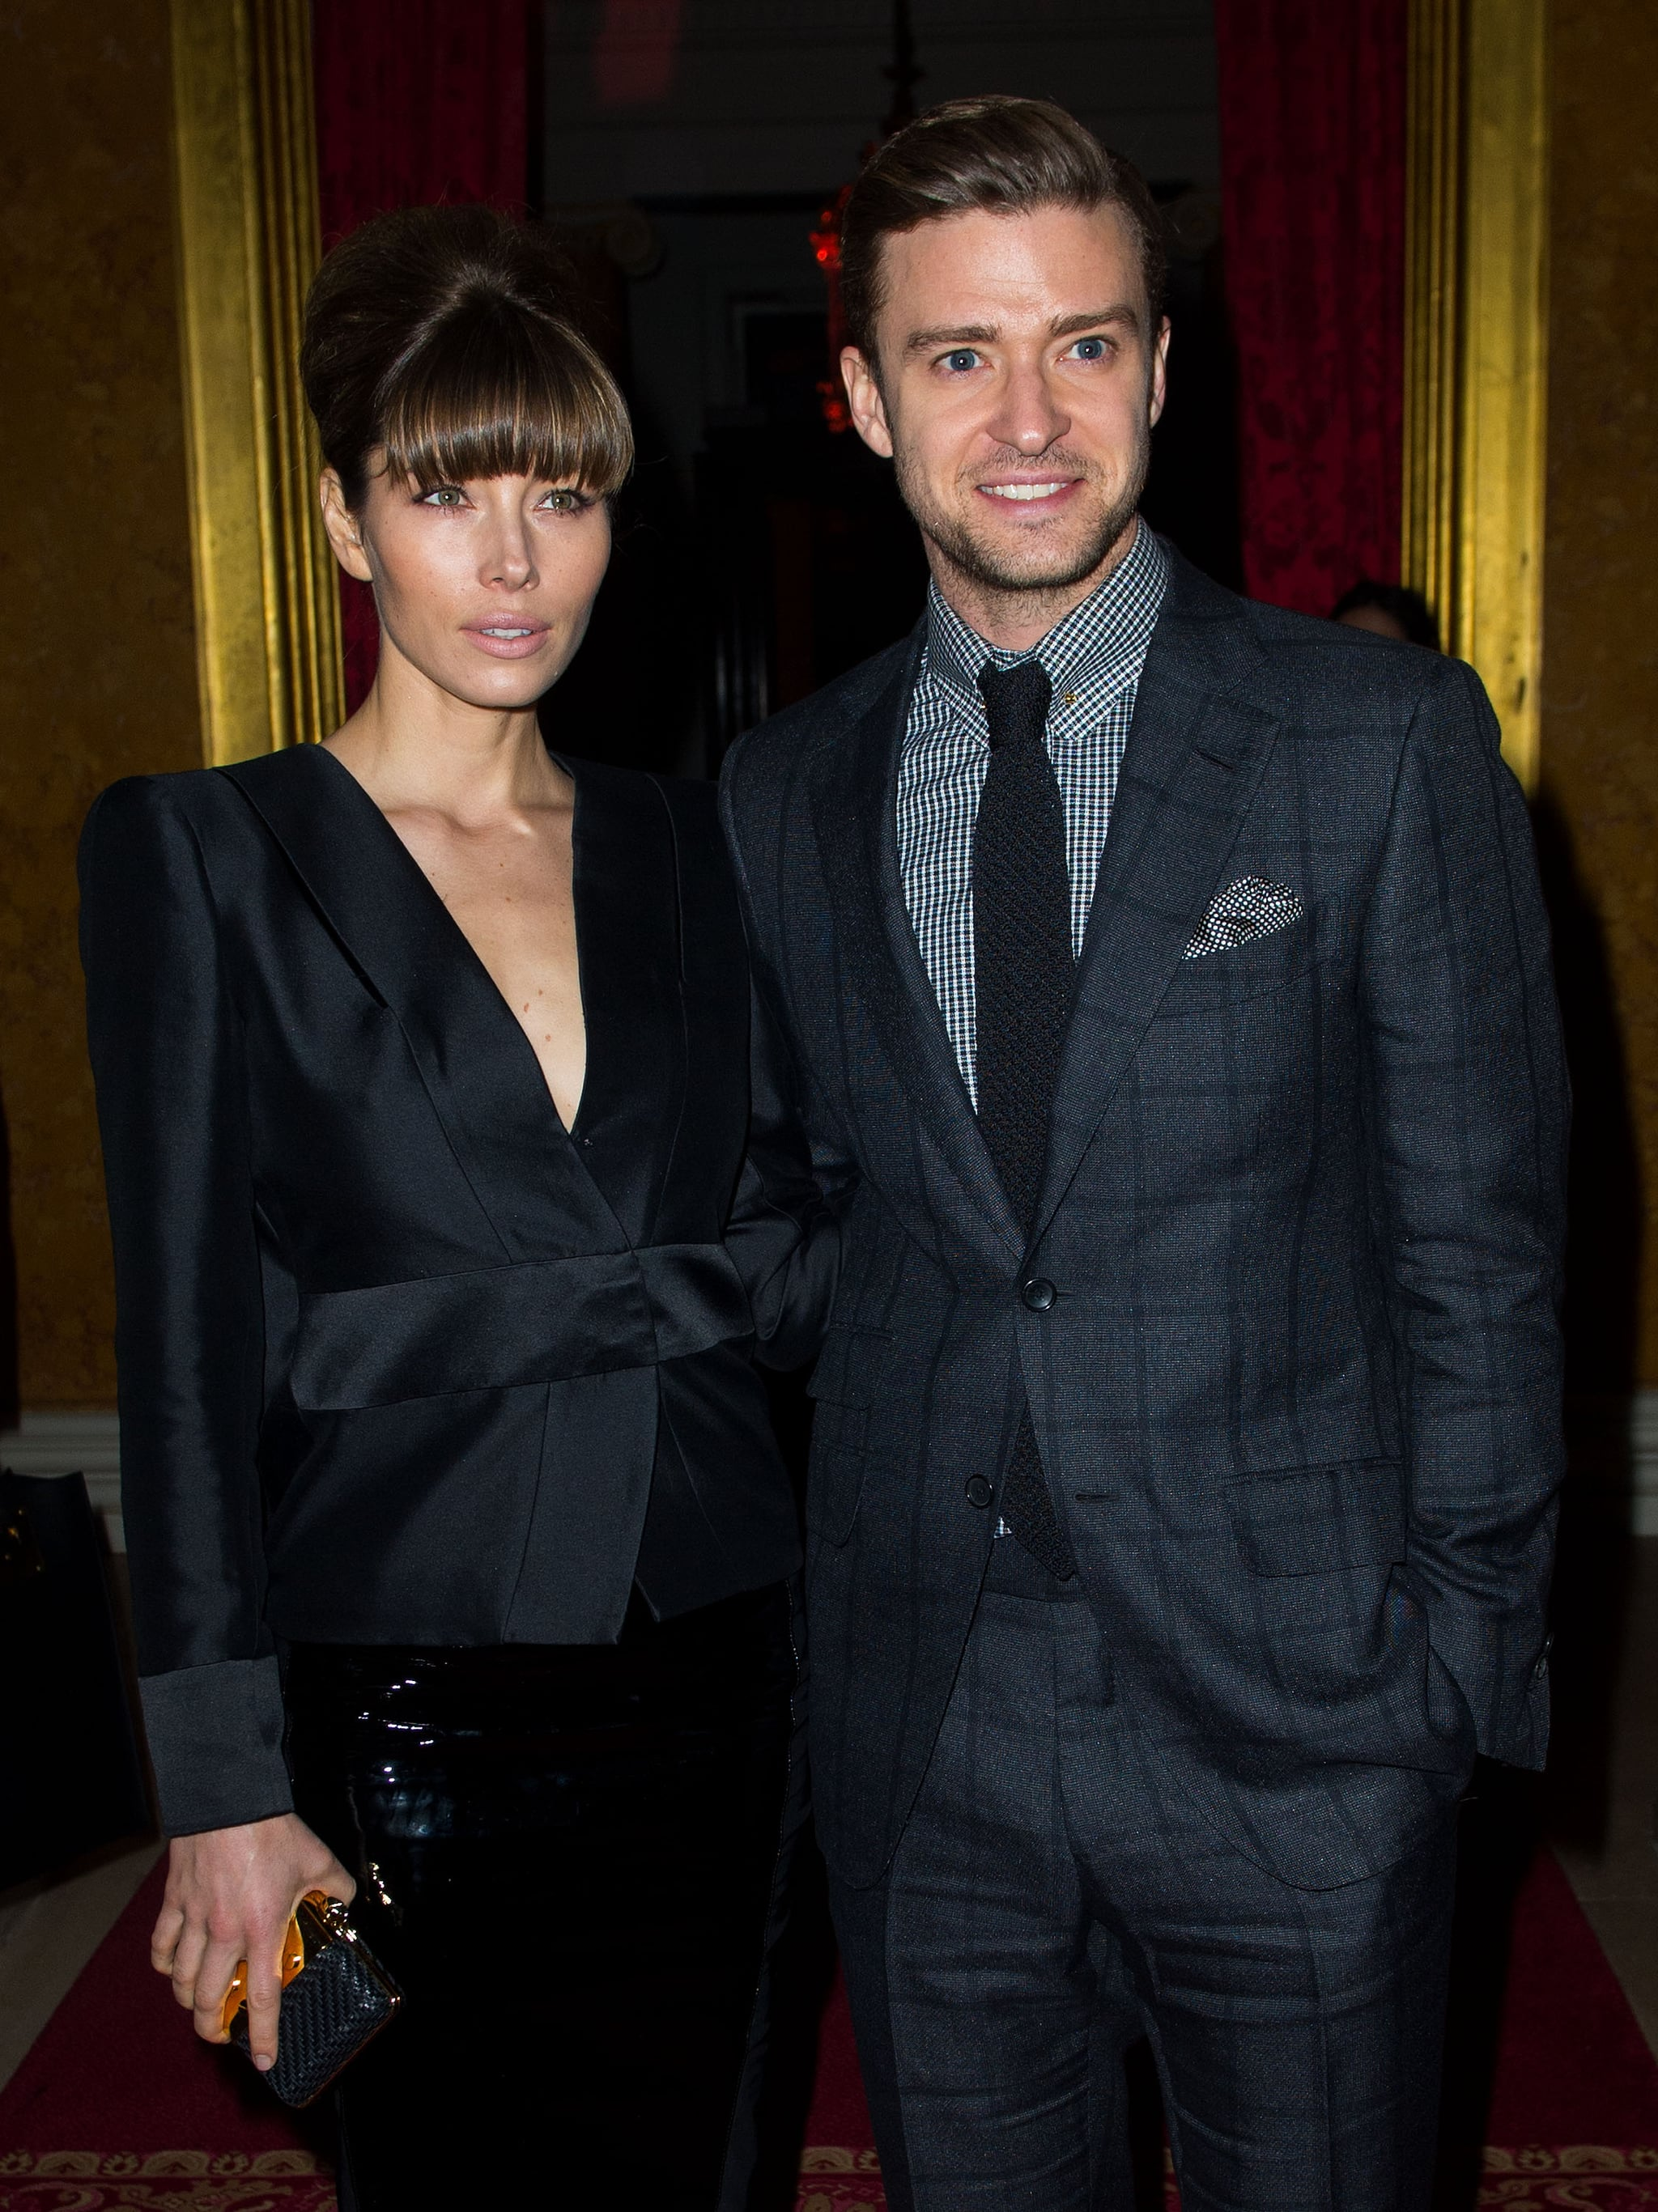 Justin Timberlake and Jessica Biel attended London Fashion Week together.